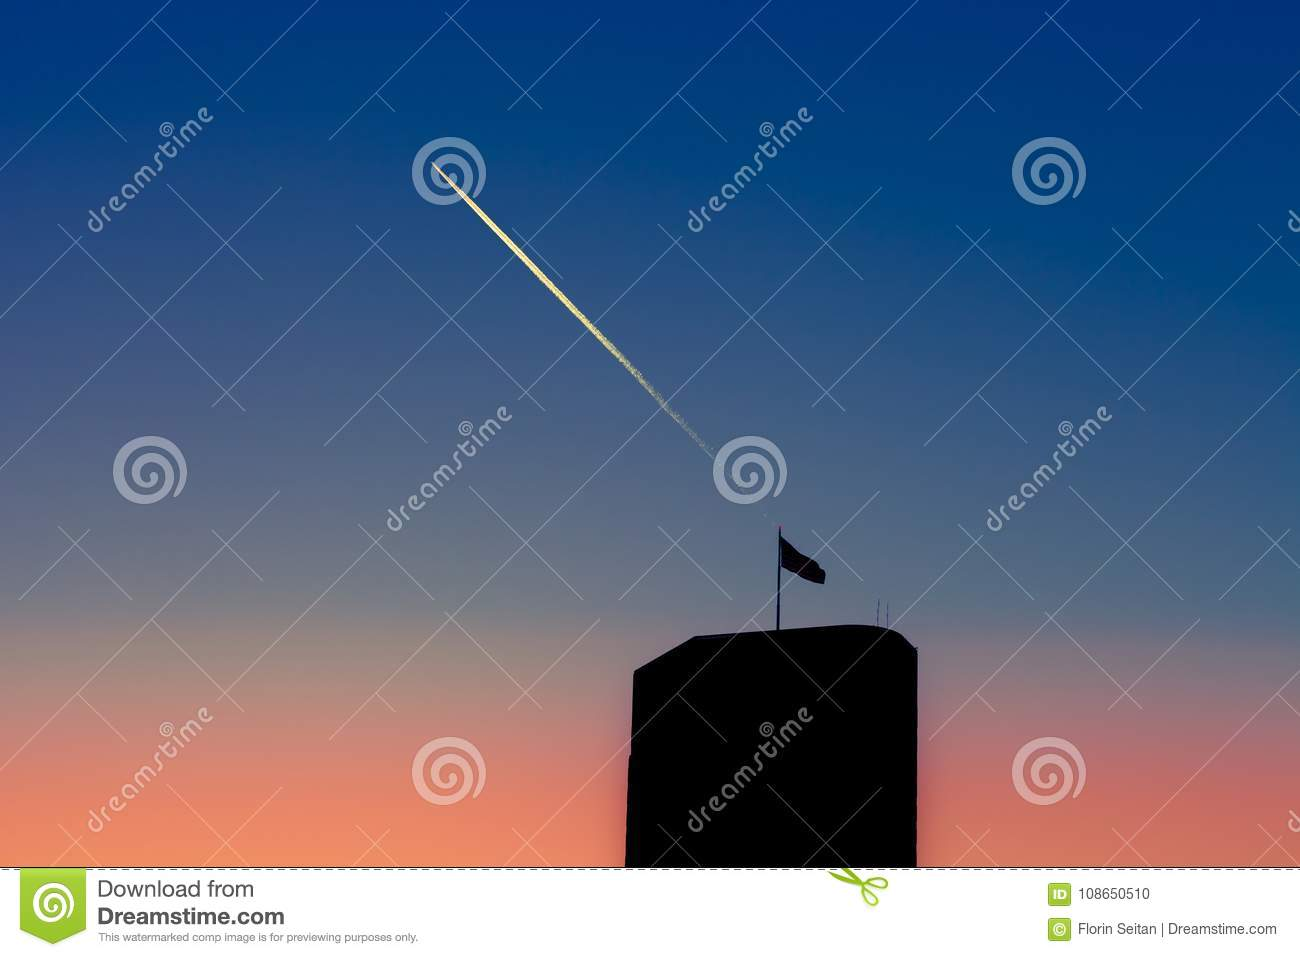 Silhouette of skyscraper with flag on top against a gradient sky with turbojet trails above